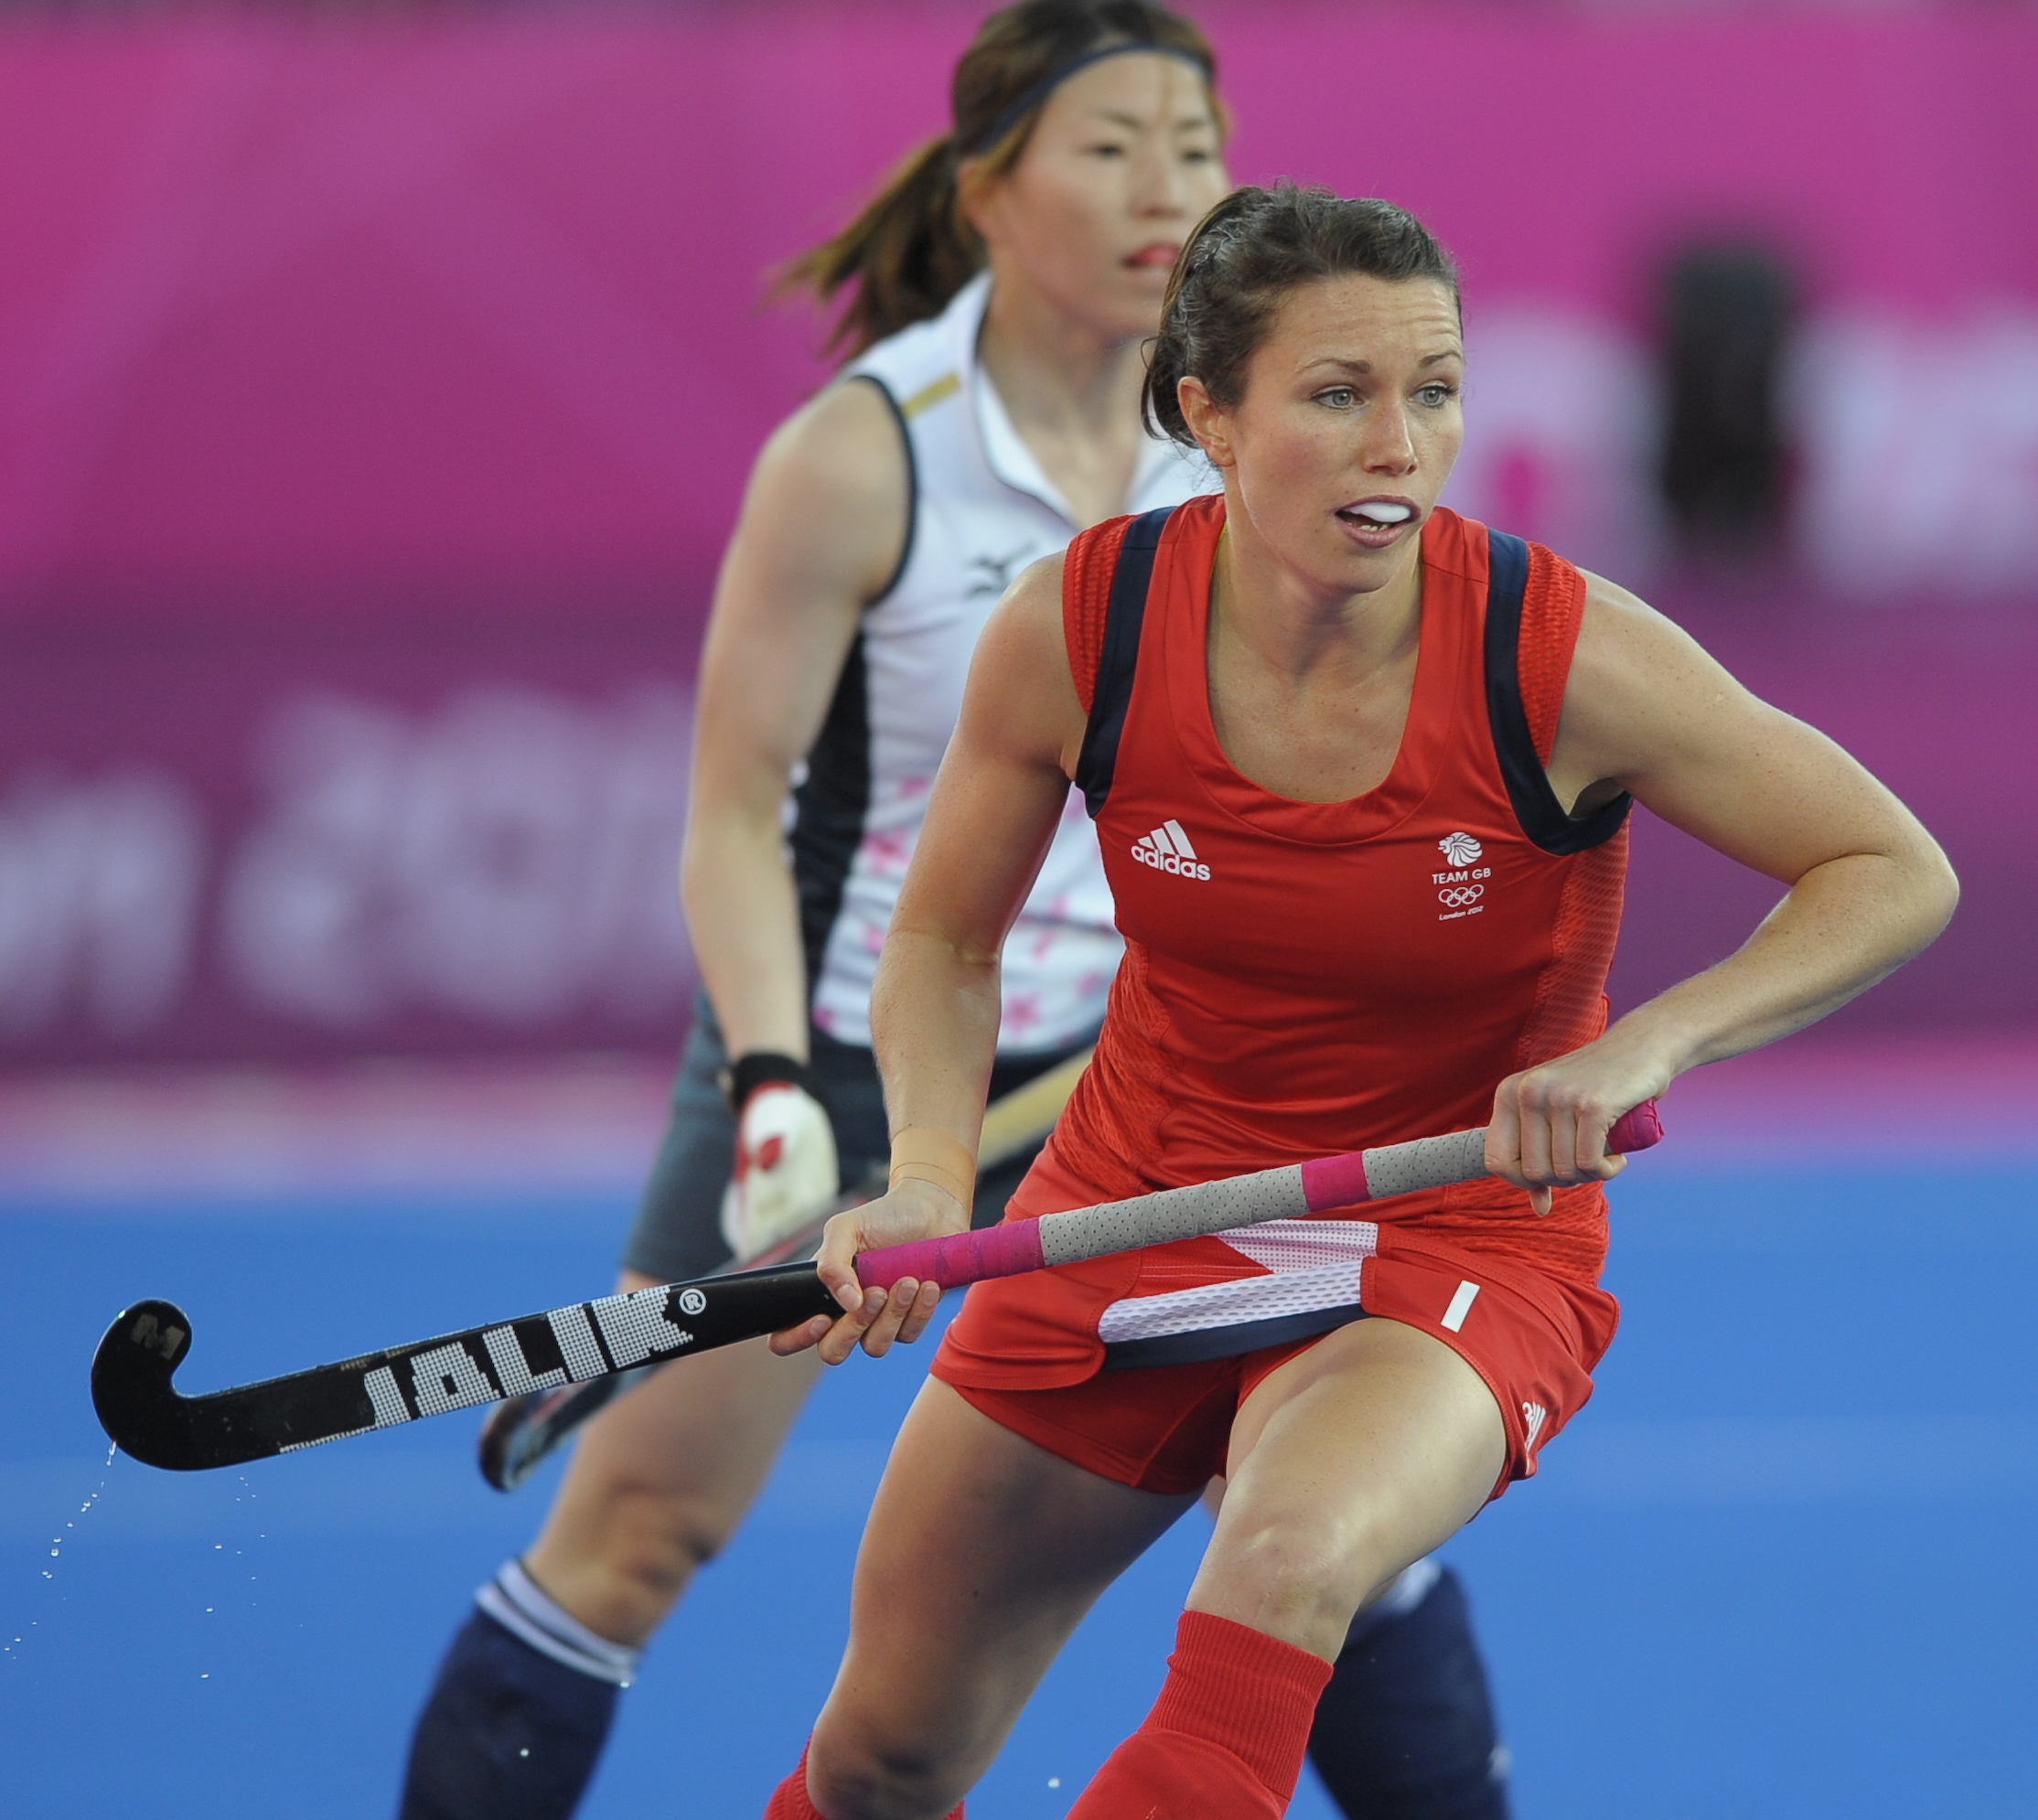 Anne Panter during the London 2012 Olympic hockey tournament (c) Ady Kerry